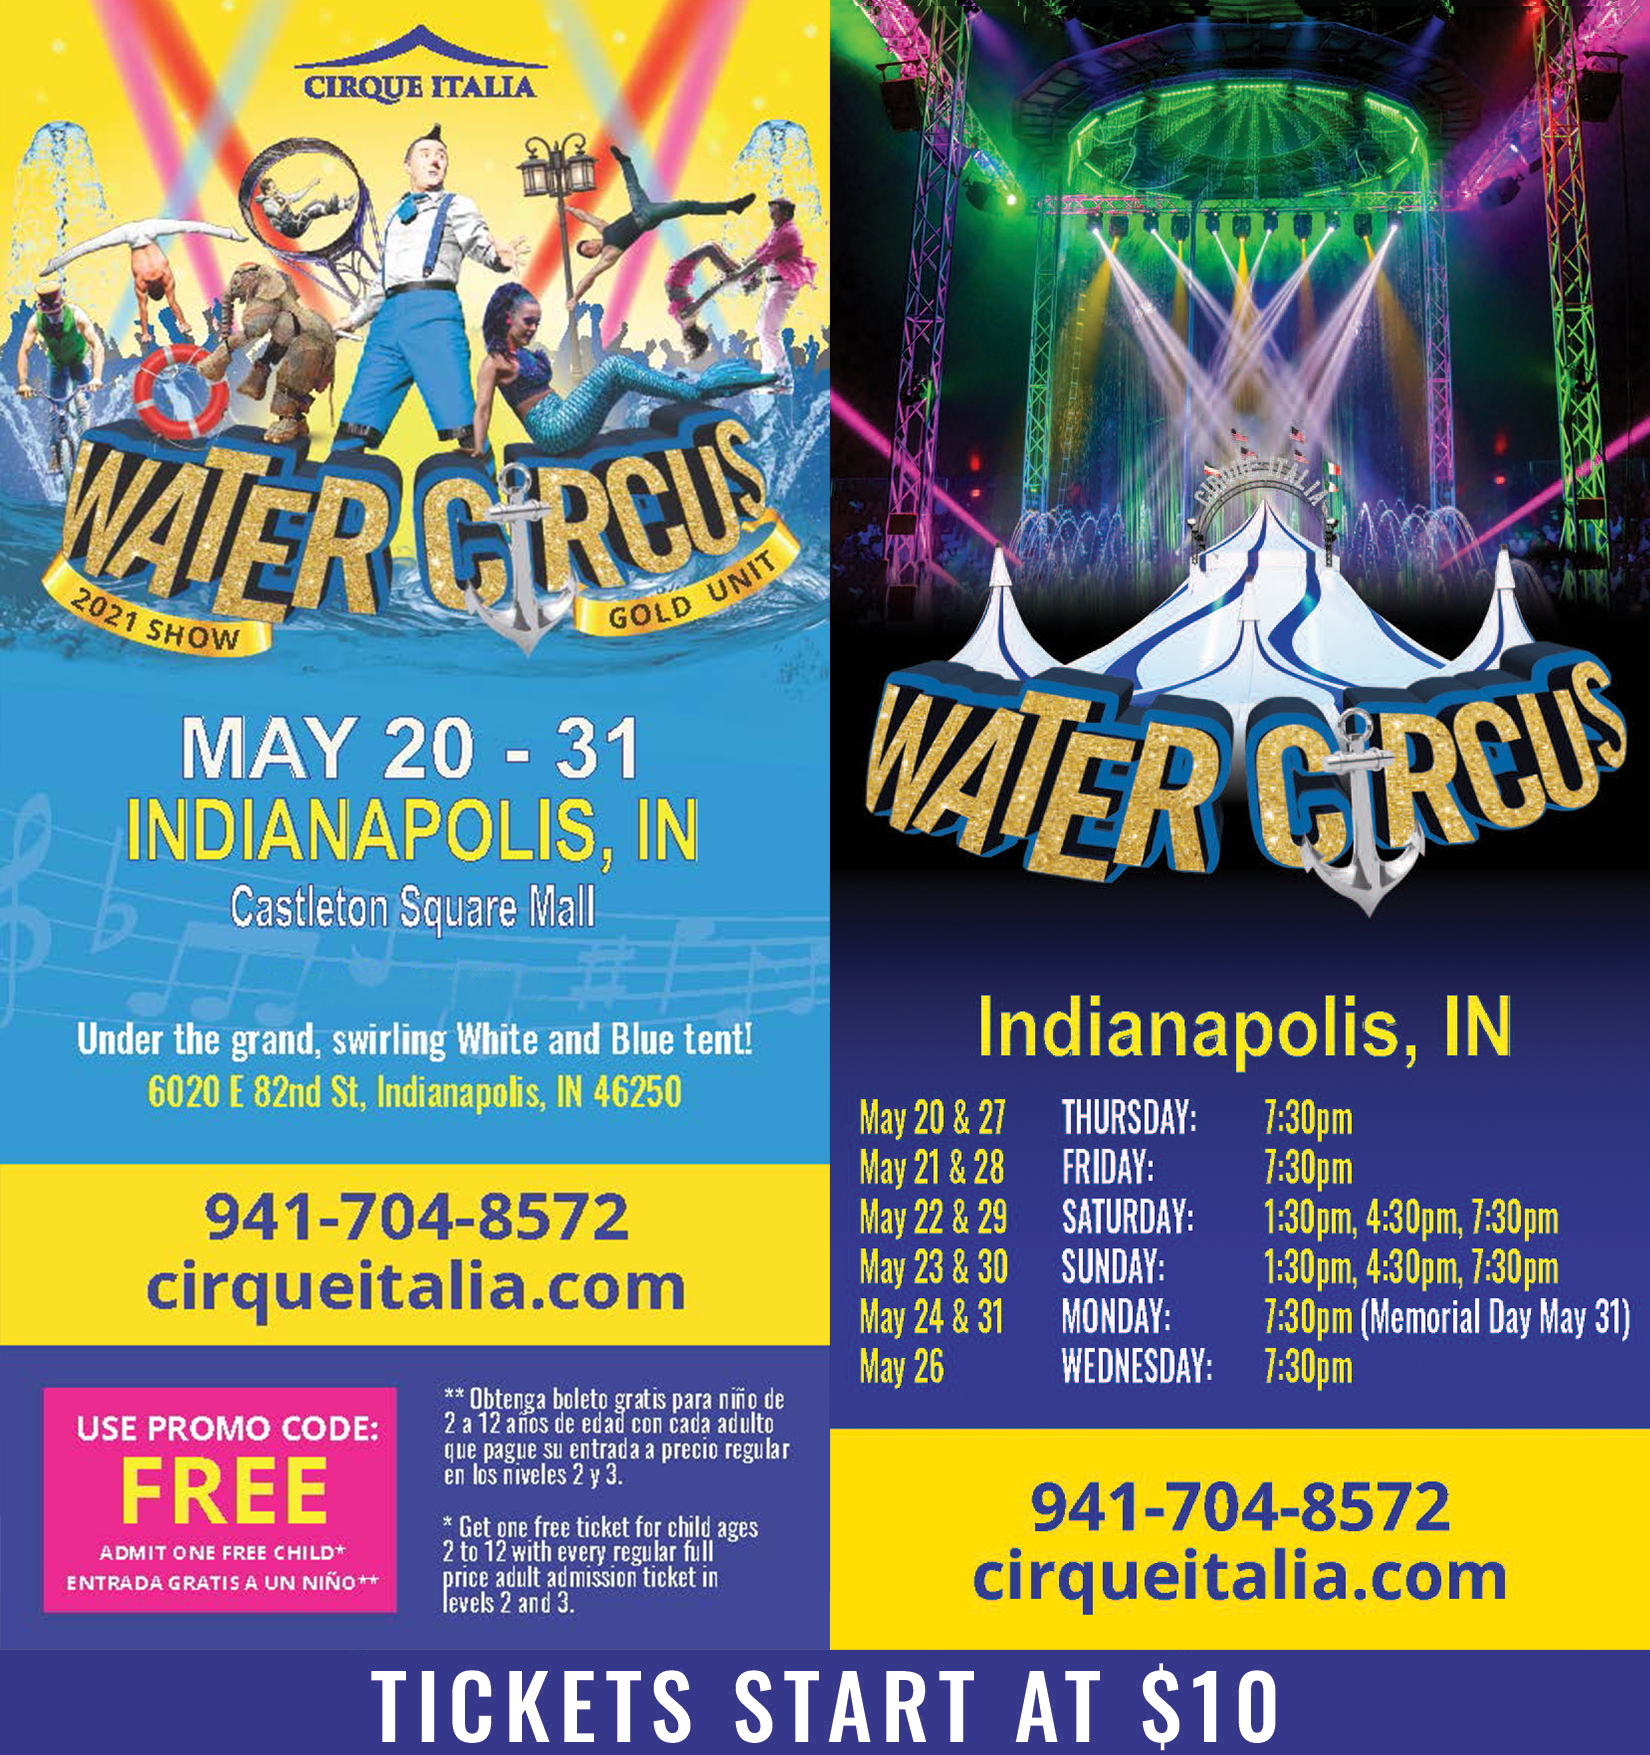 Submitted GoldUnit-Indianapolis,IN-DigitalCoupon.jpg